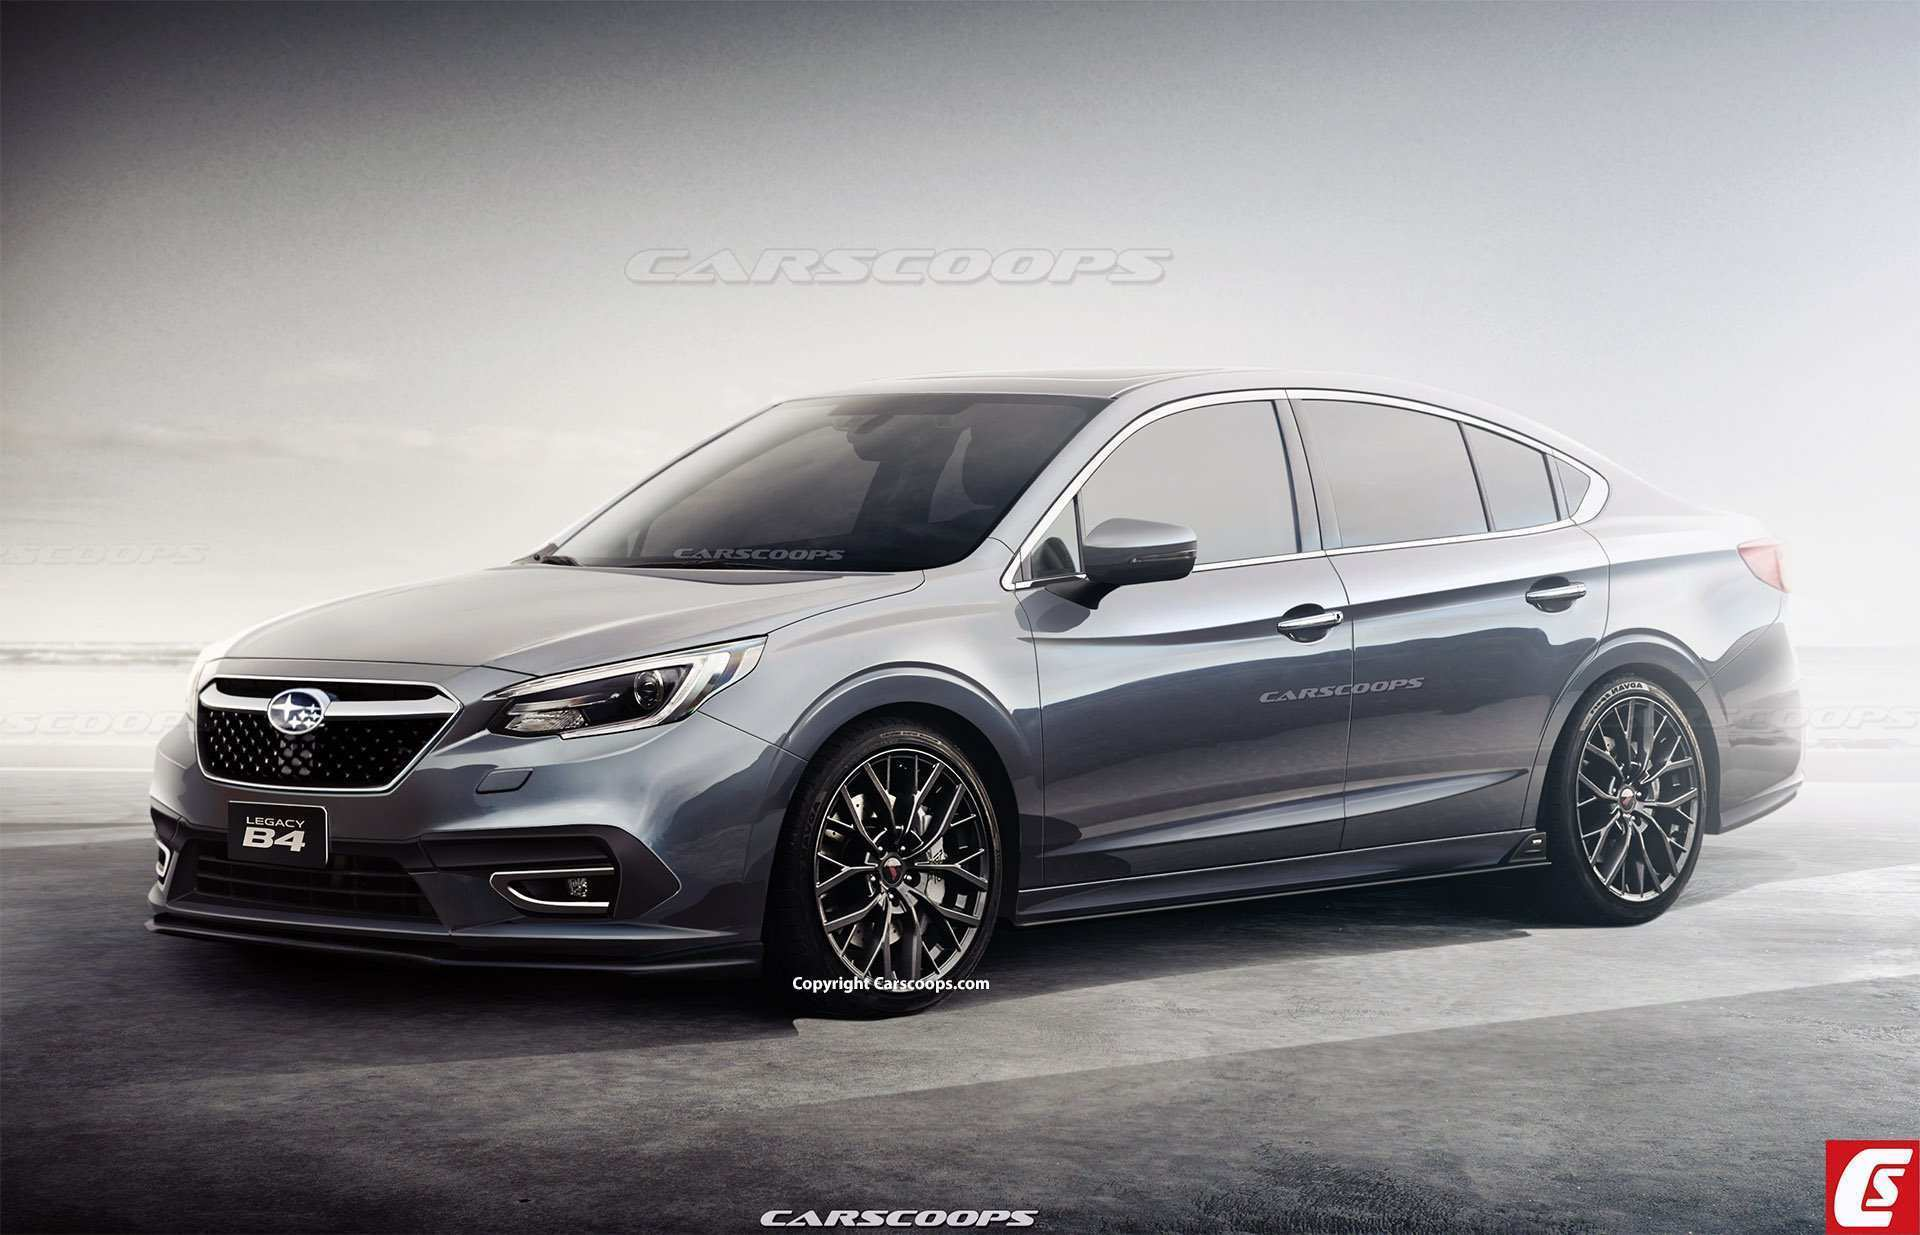 42 The Best When Will 2020 Subaru Legacy Be Available Redesign And Review